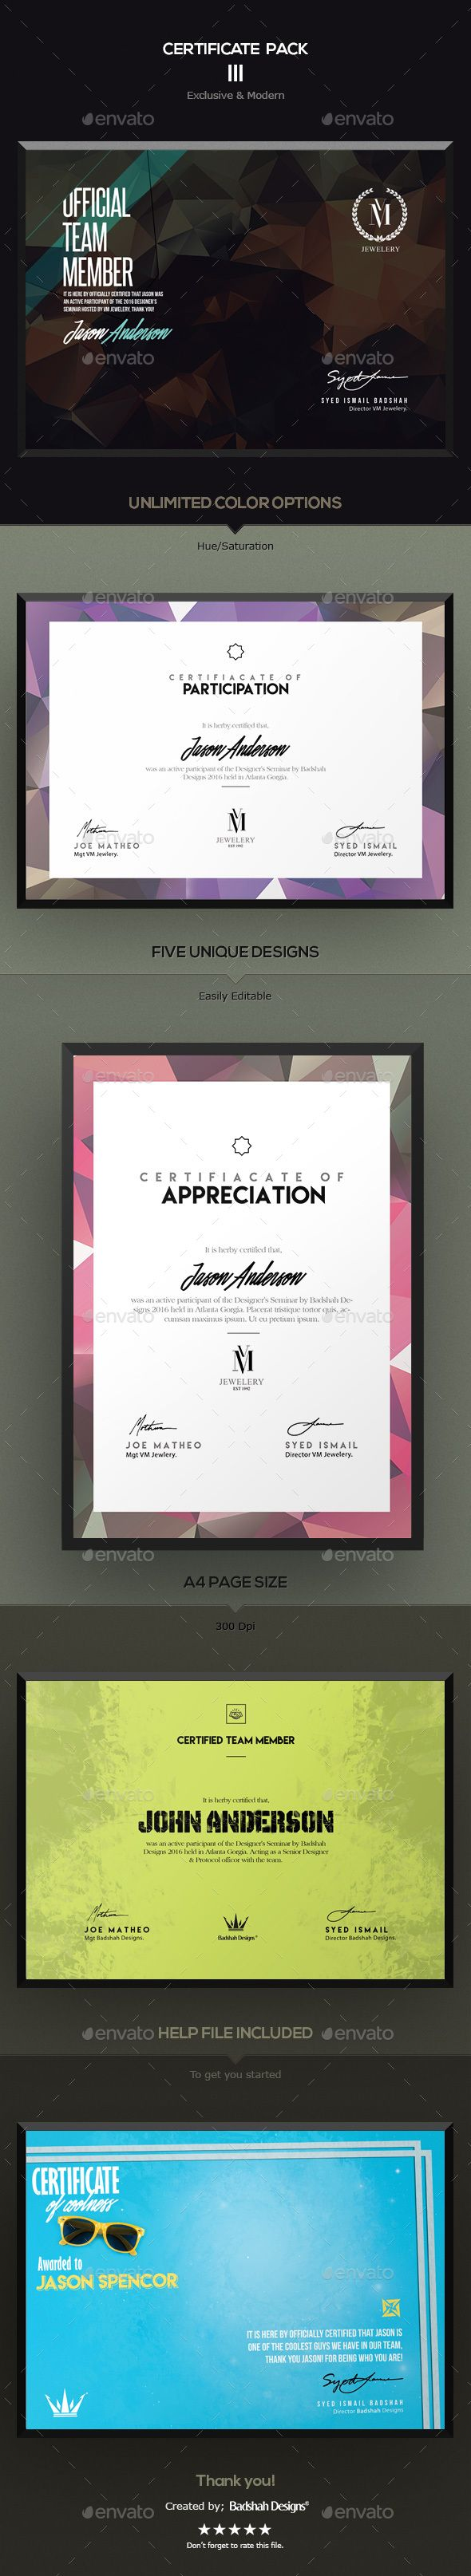 Certificate Pack 3 - Certificate Template PSD. Download here: http://graphicriver.net/item/certificate-pack-3/15618968?s_rank=11&ref=yinkira